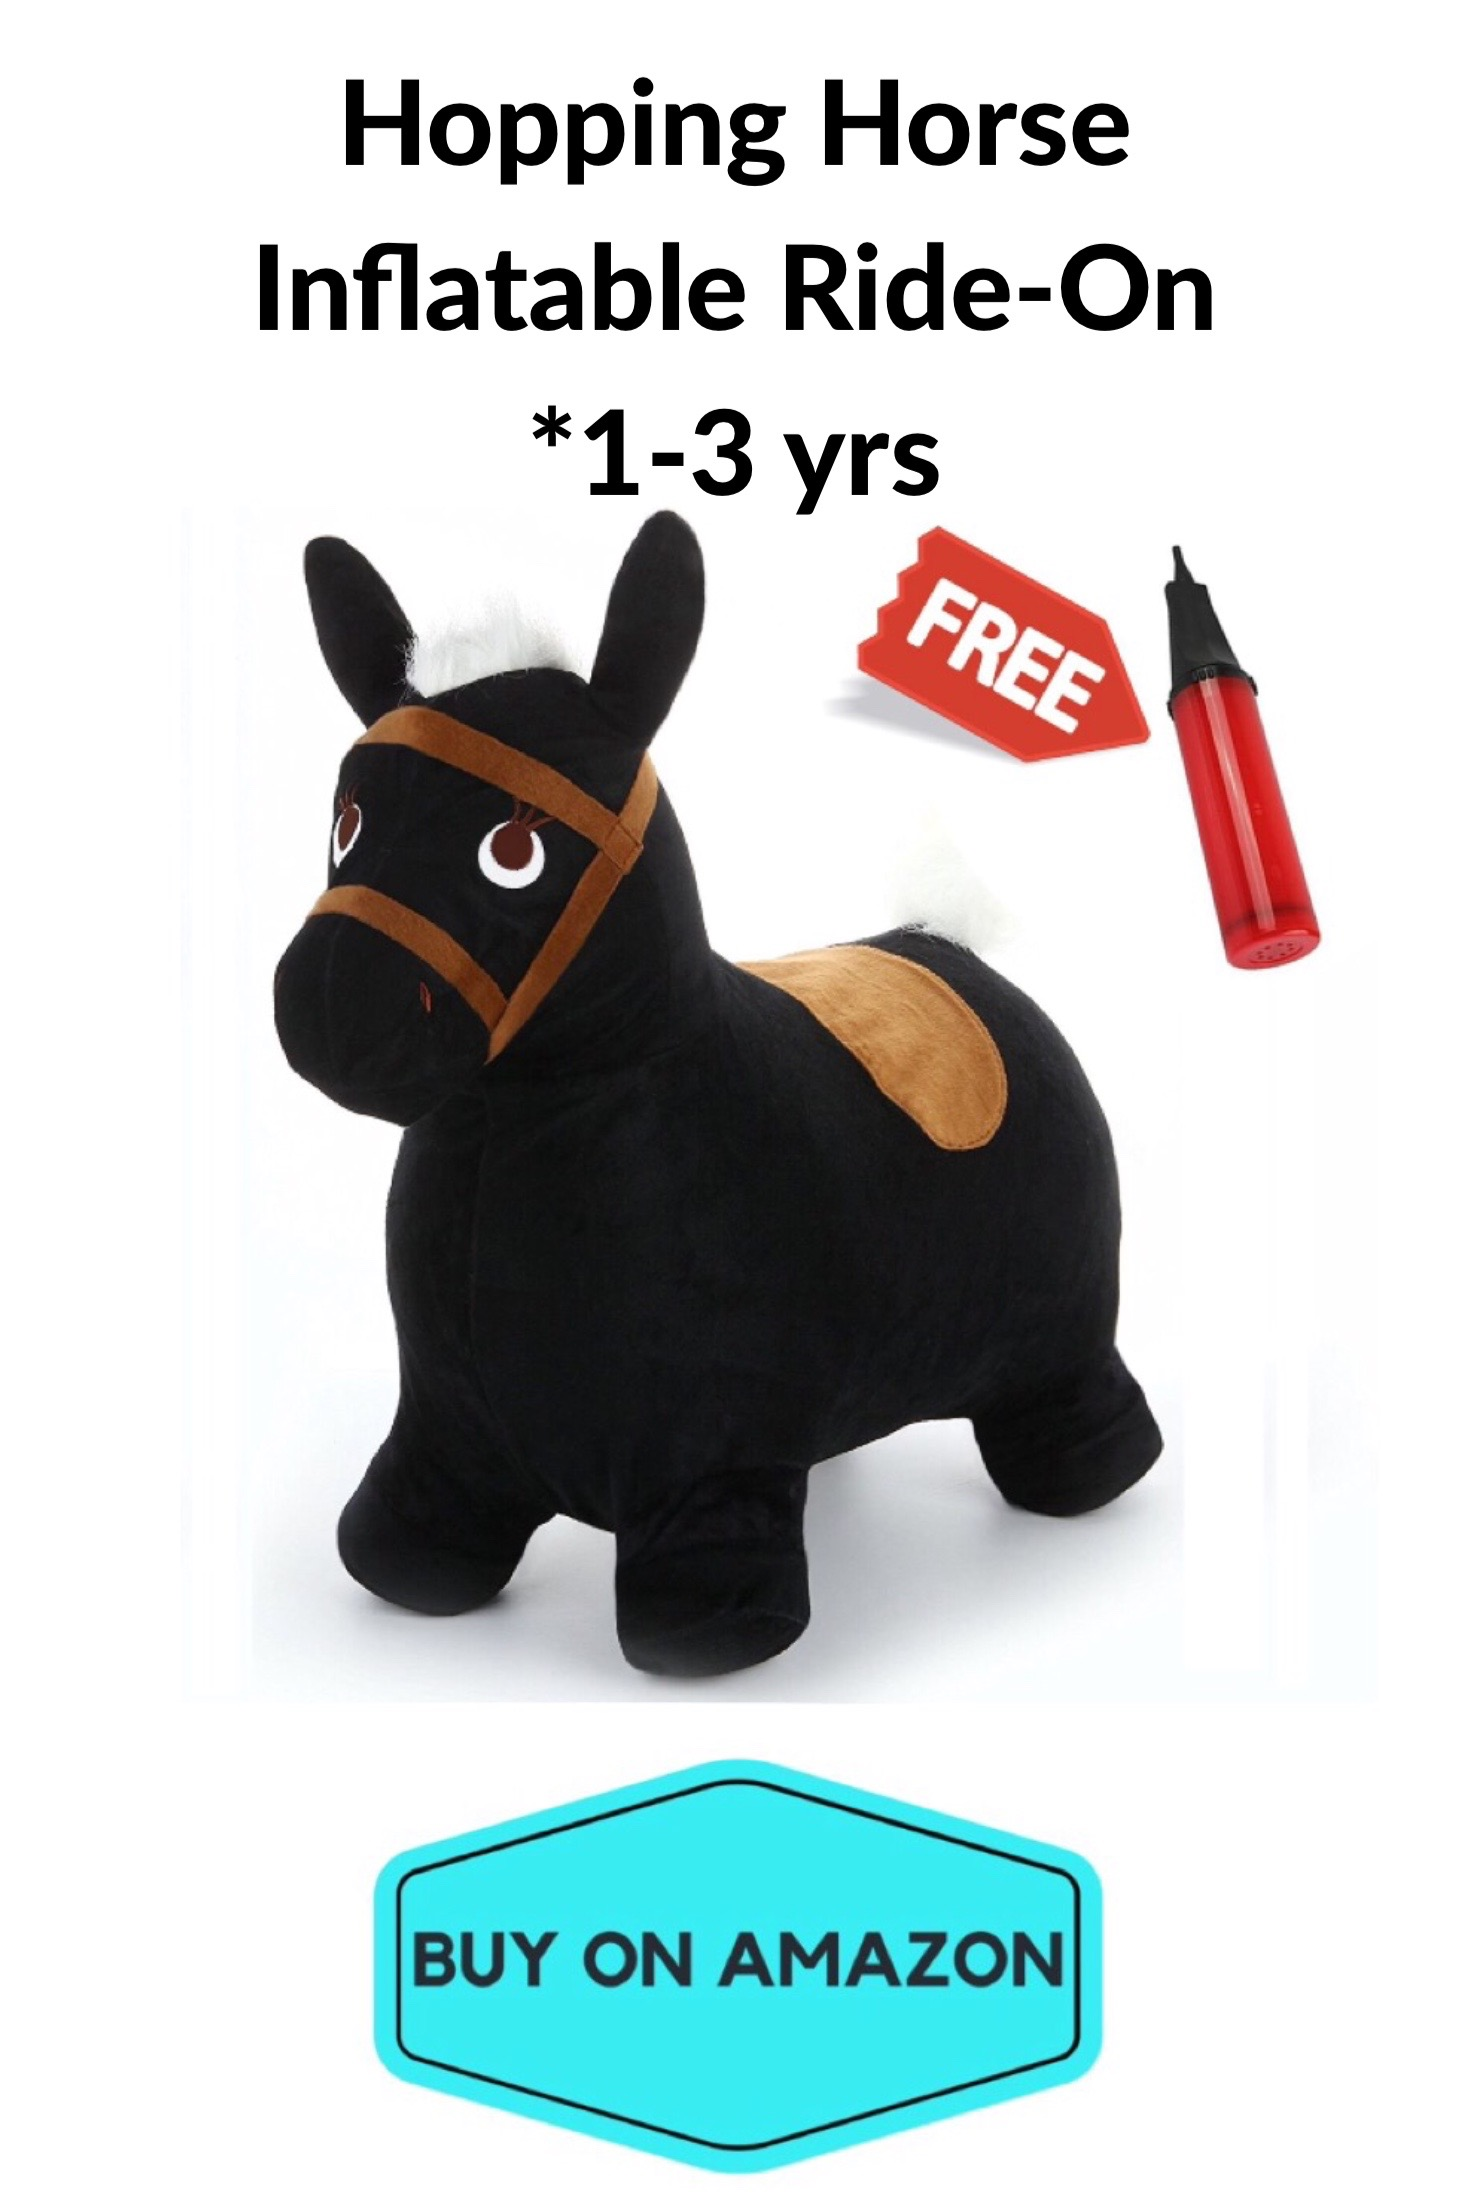 Hopping Horse Inflatable Ride-On